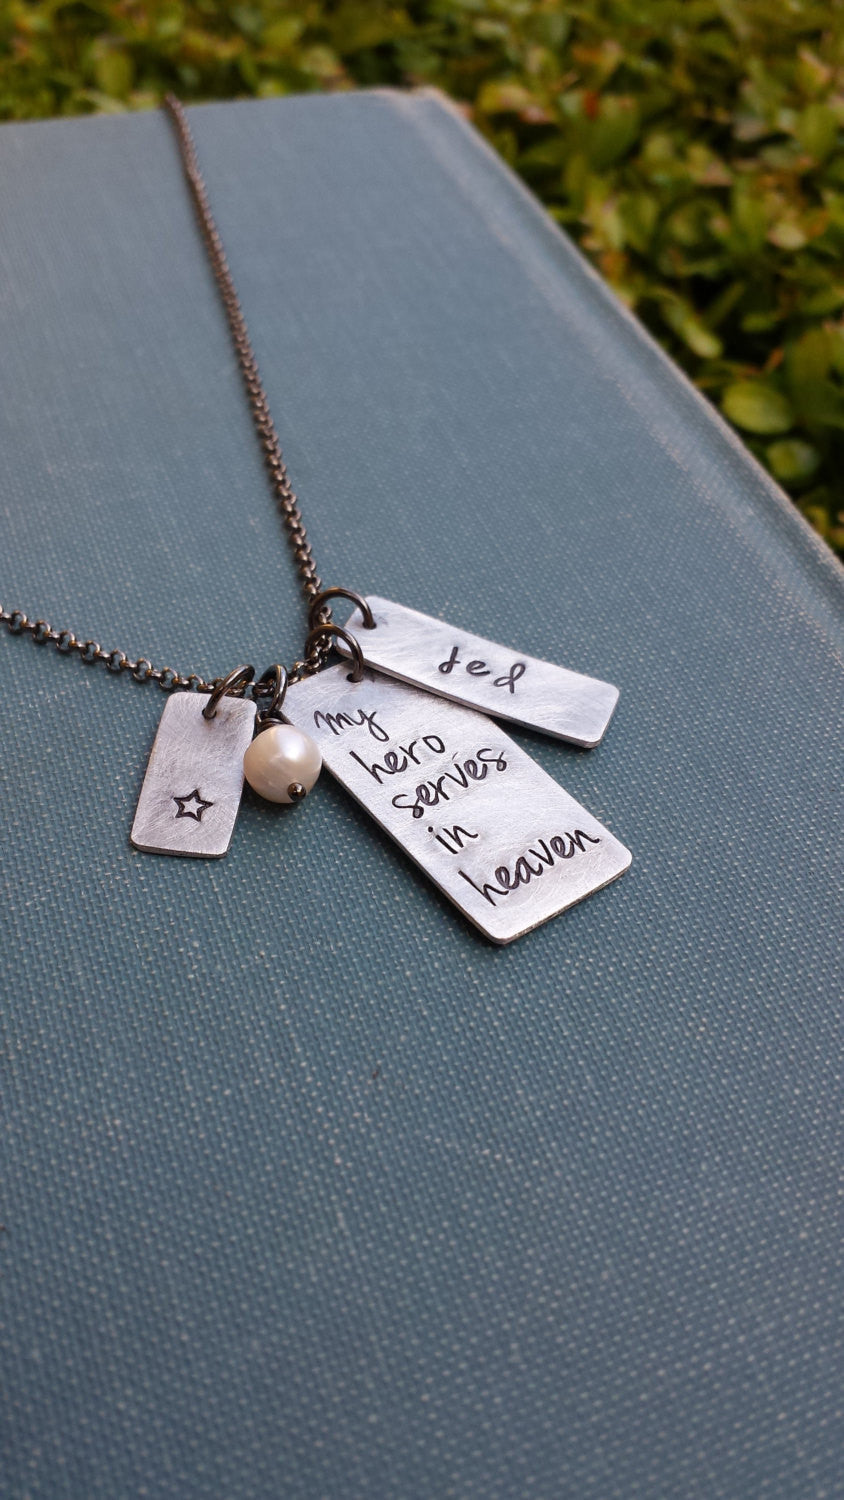 My Hero Serves In Heaven Custom Hand Stamped Aluminum Fallen Officers Wife Fallen Officers Mother's Necklace by MyBella